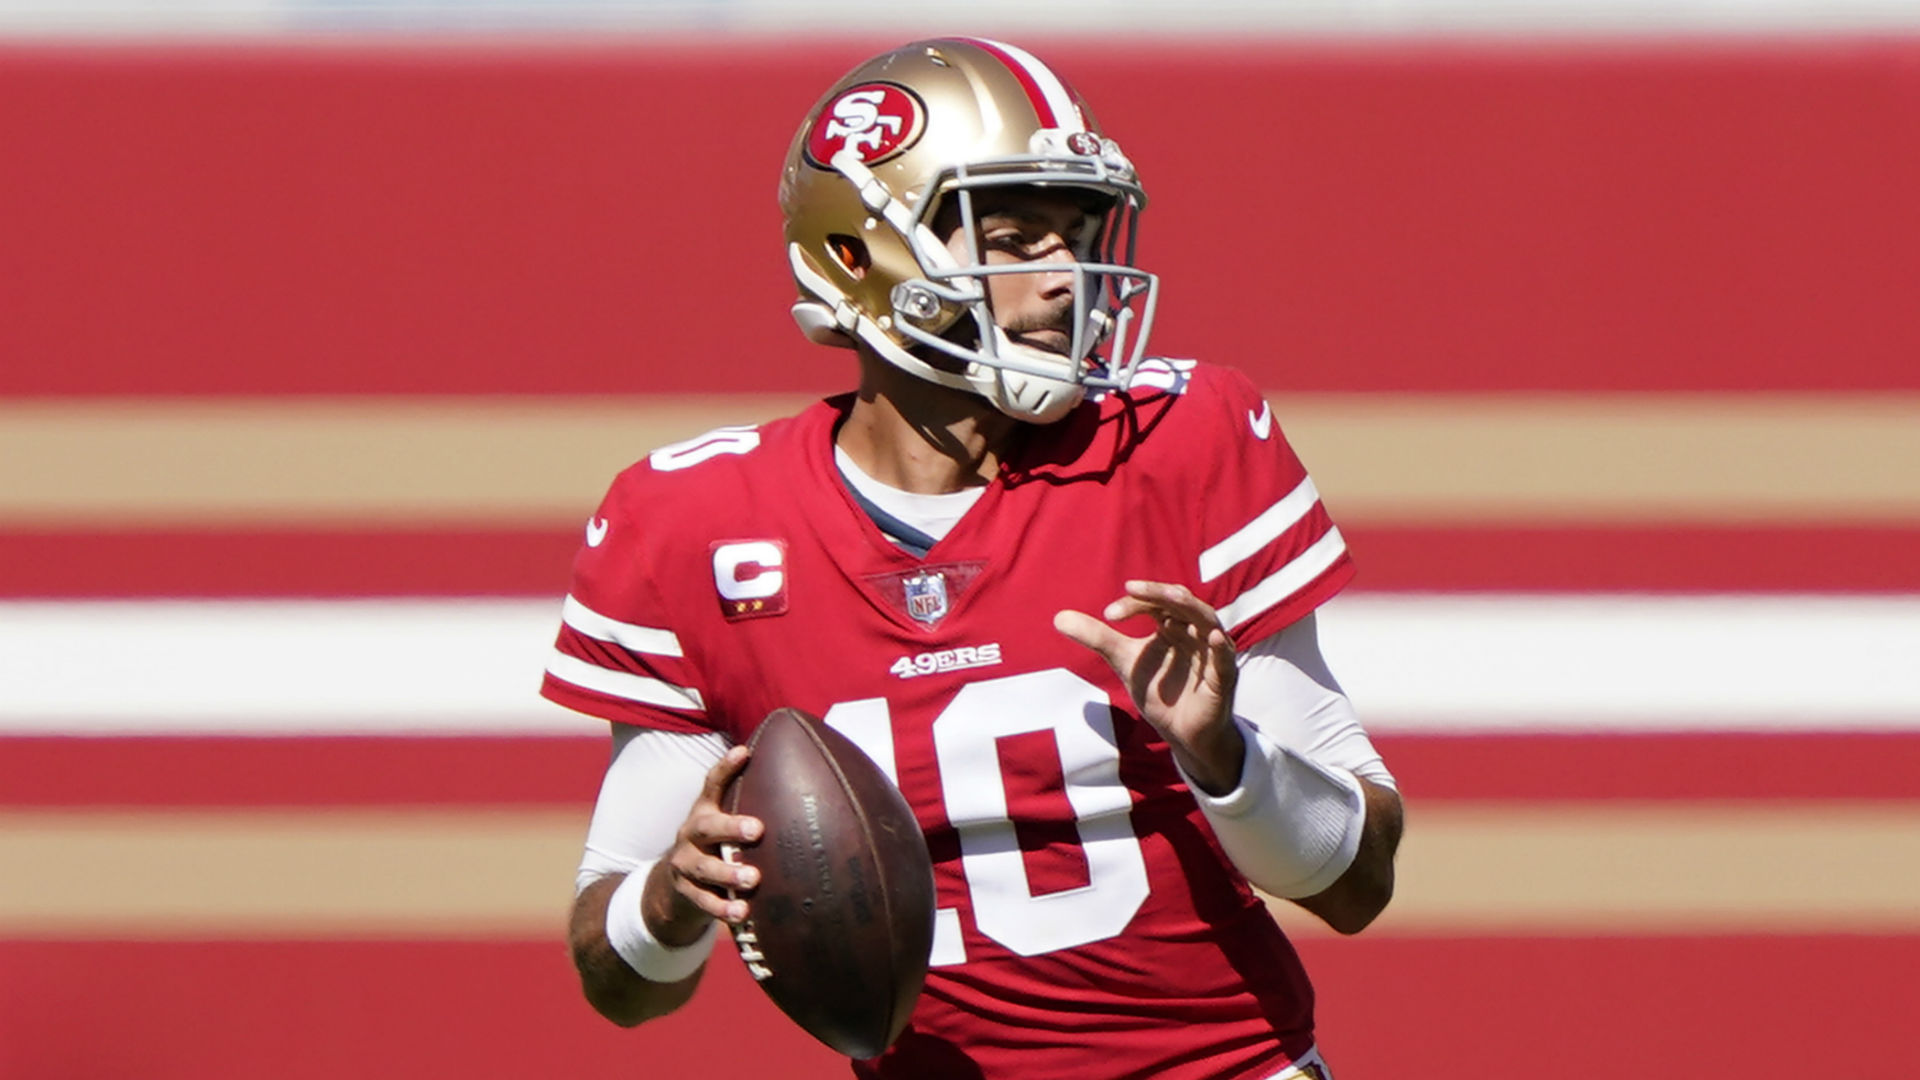 Jimmy Garoppolo injury update: QB full participant in practice as 49ers prepare for Rams